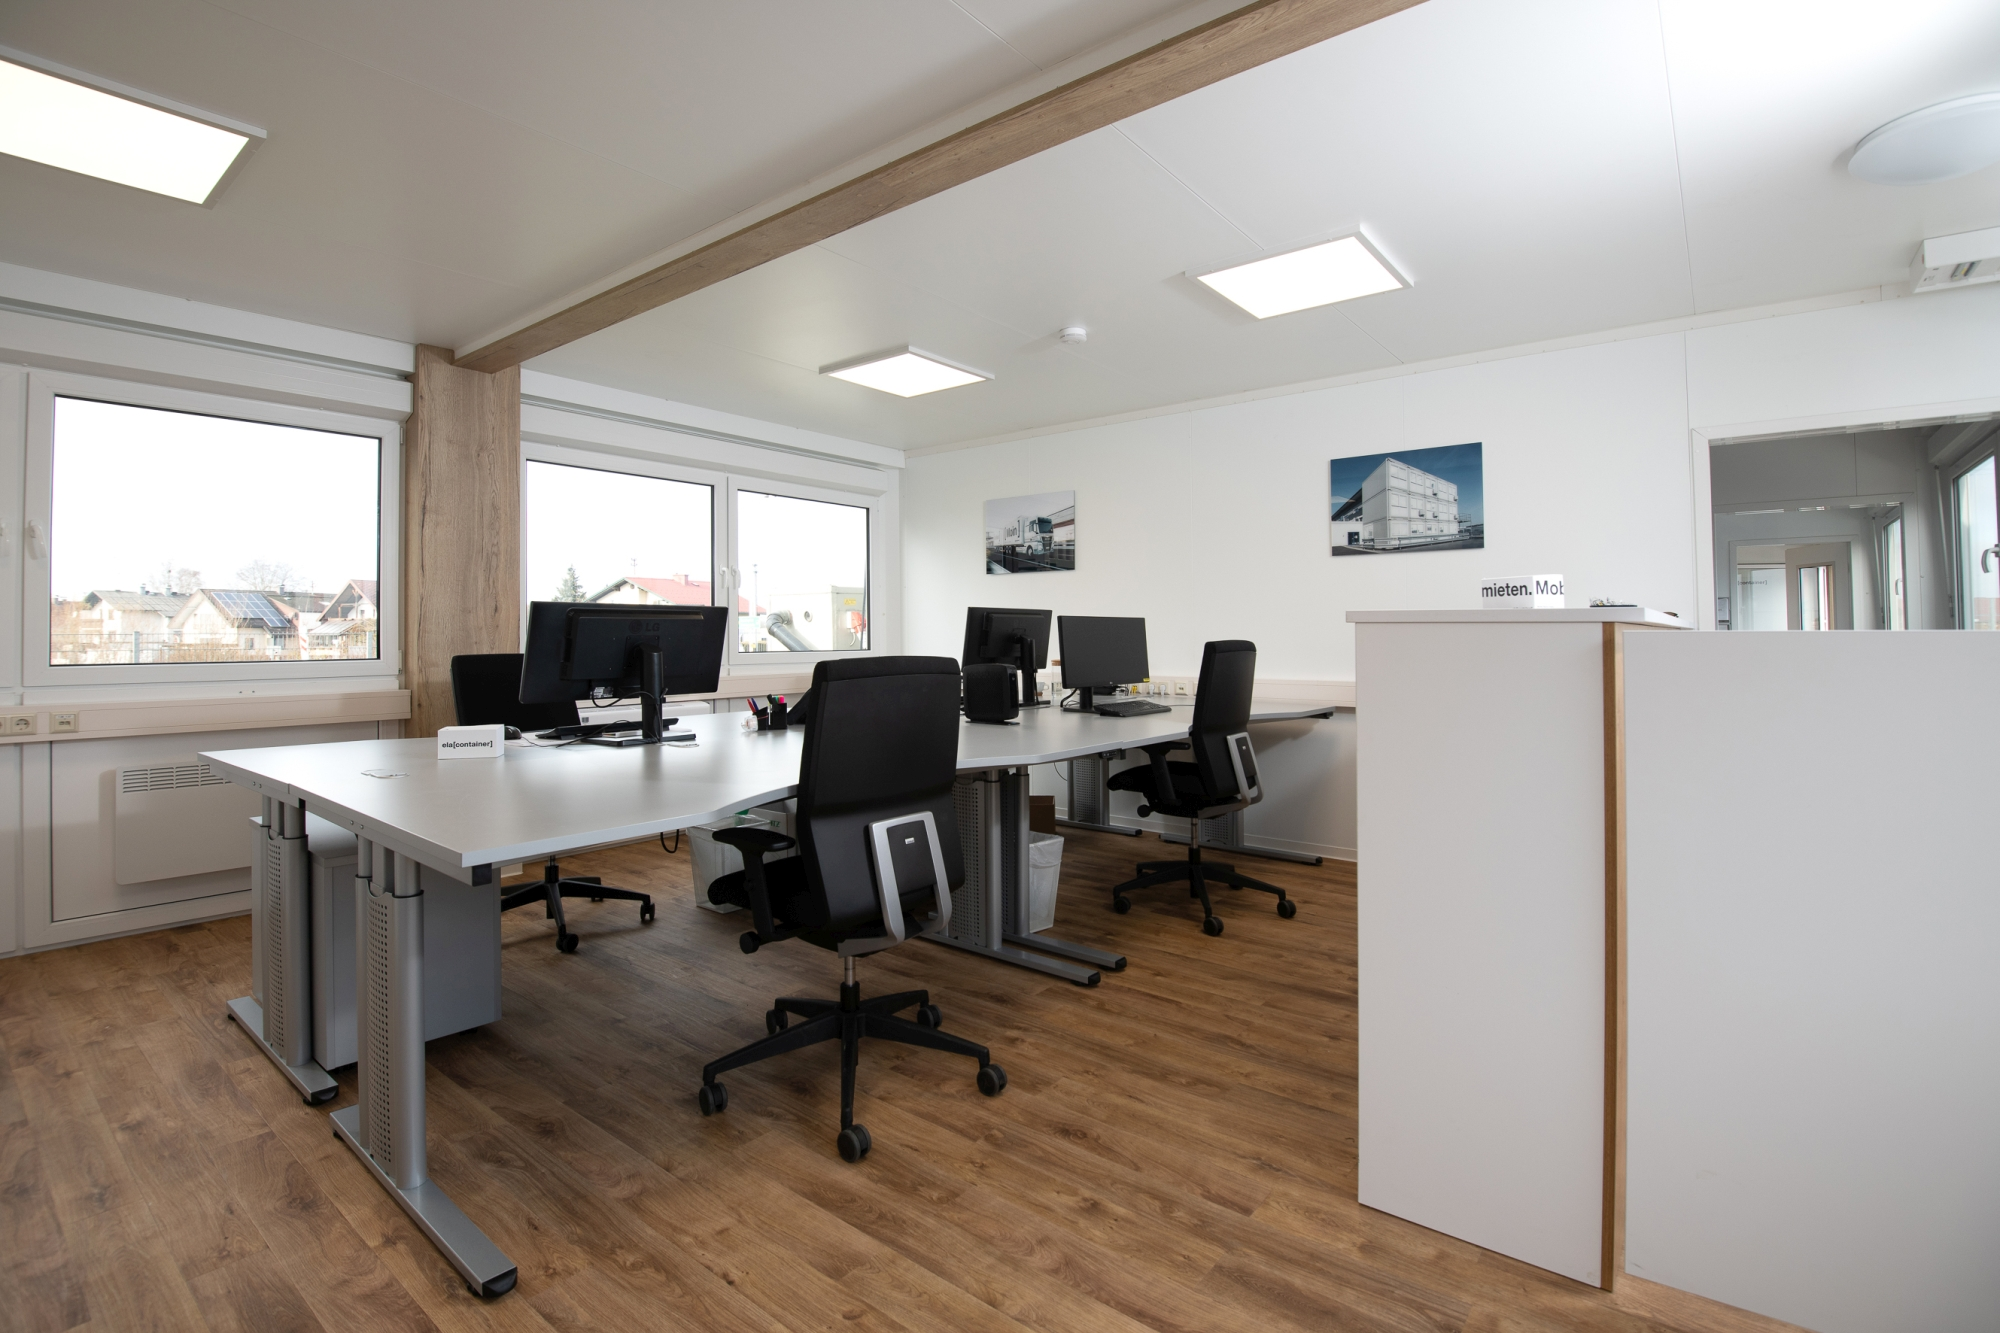 The three-metre-wide premium modules also serve as bright and friendly office spaces for ELA employees in Austria.